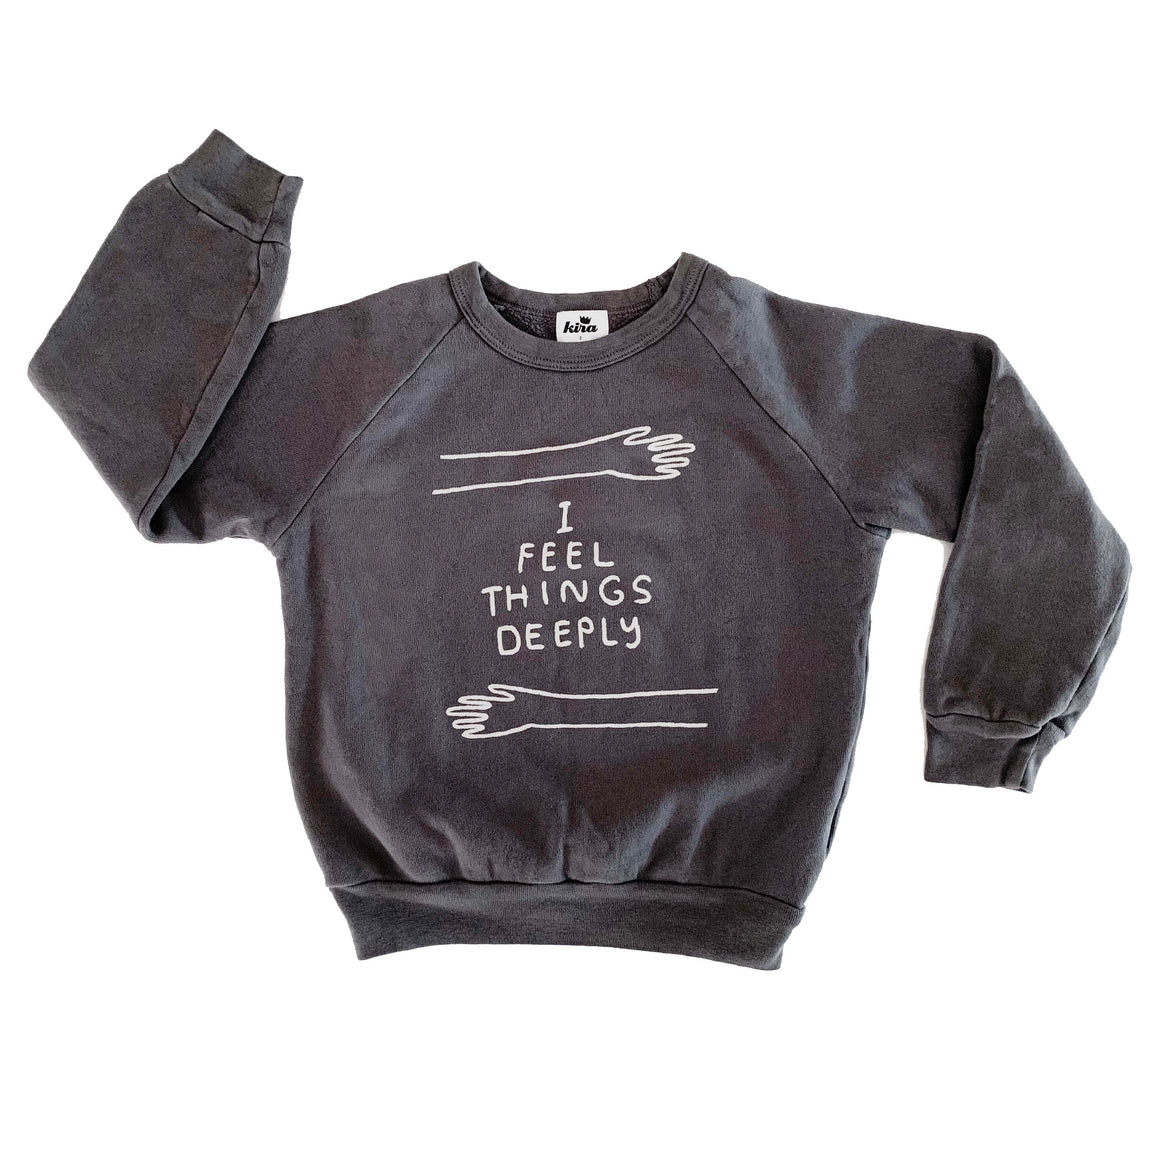 I Feel Things Deeply Raglan Sweatshirt | Kids